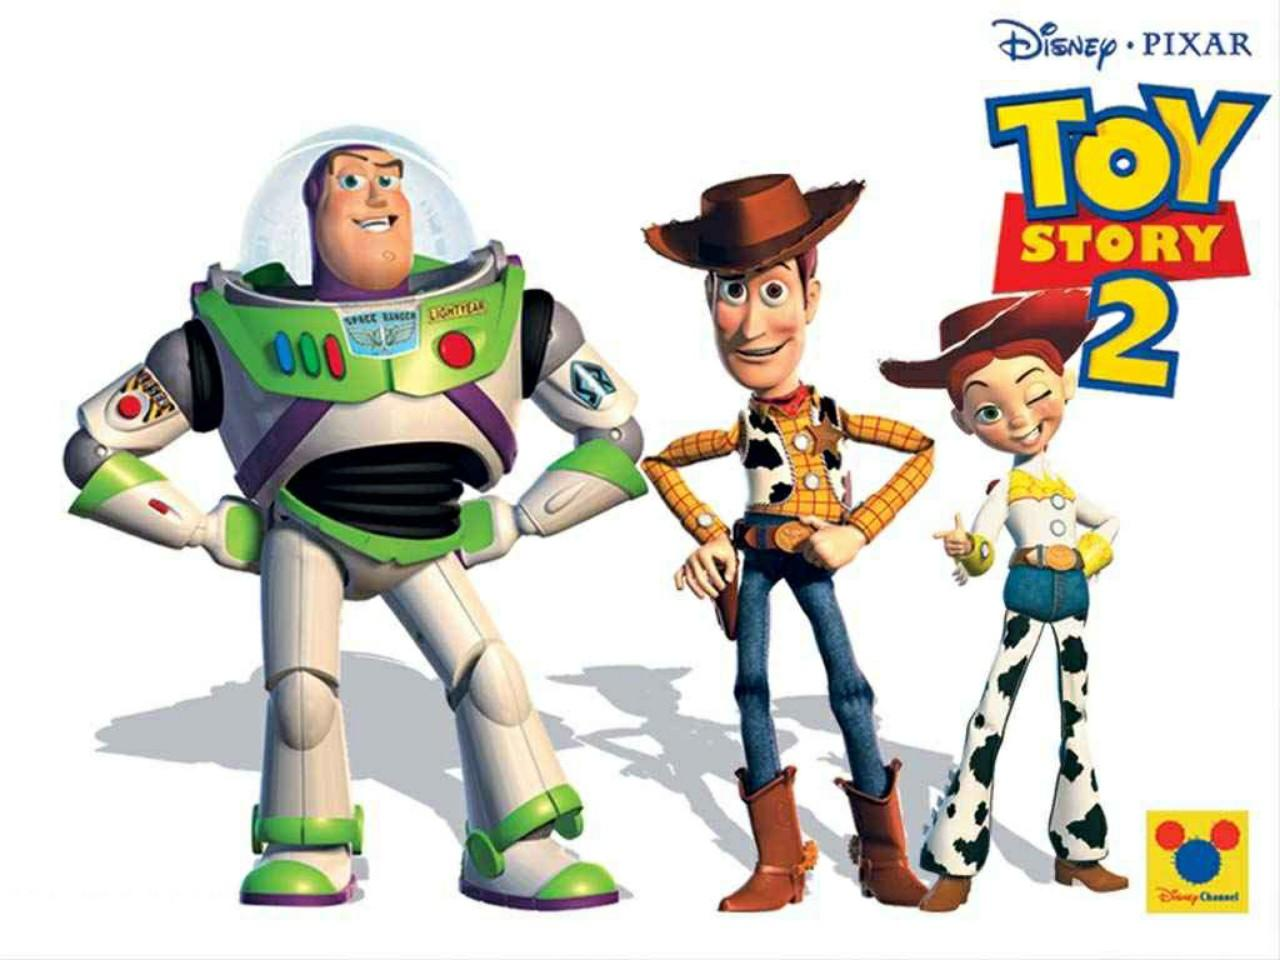 Buzz and Woody come back with new characters